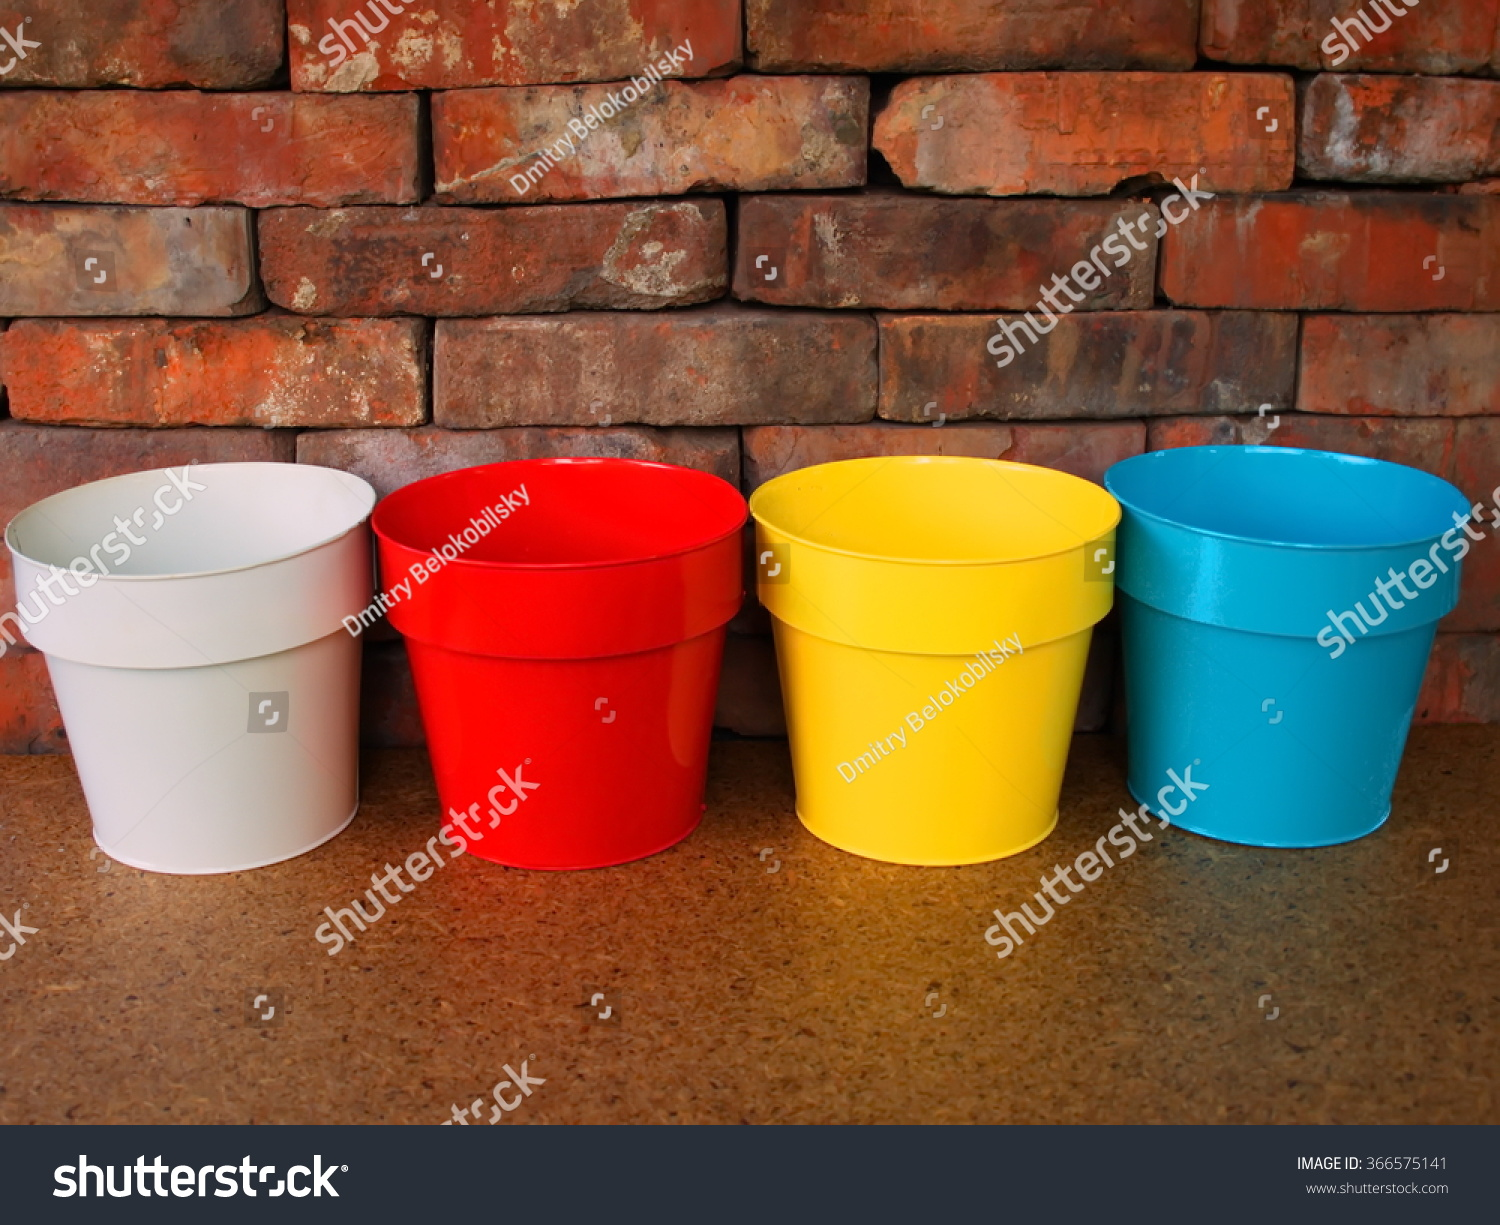 Colorful Flower Pots On Brick Wall Stock Photo 366575141 - Shutterstock